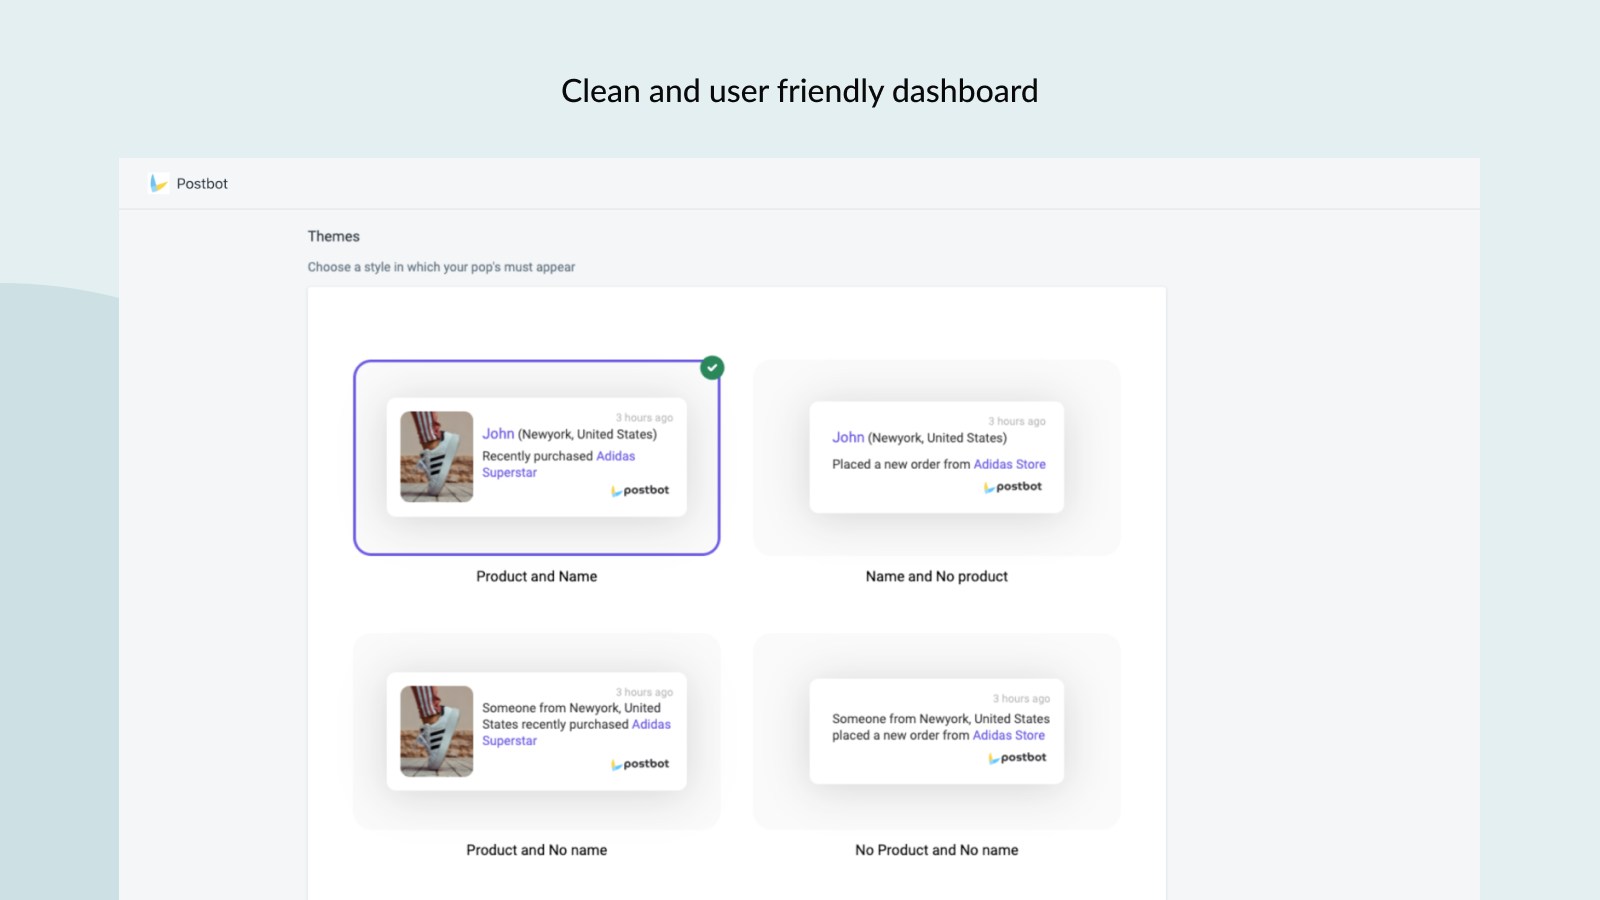 Clean and user friendly dashboard